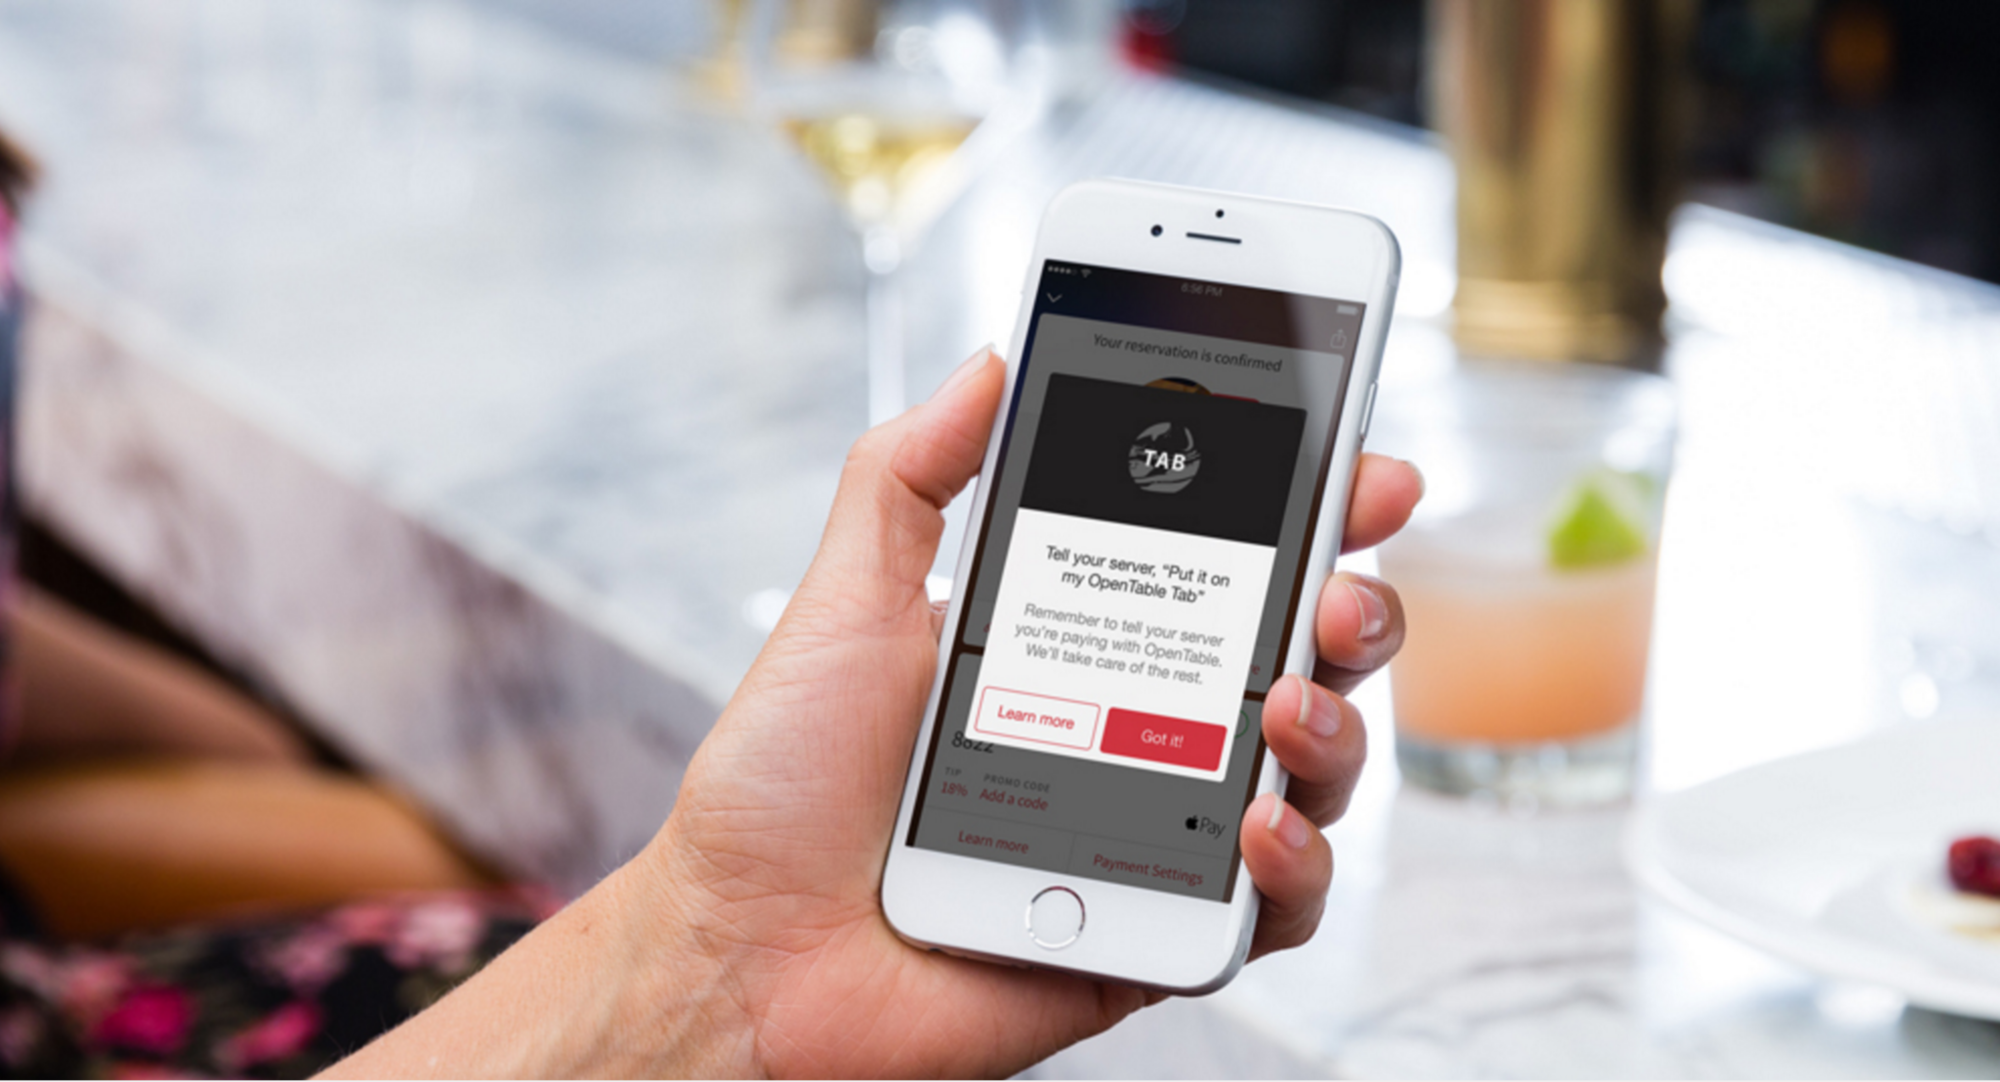 OpenTable takes the paperwork and credit-card swap out of paying at restaurants.